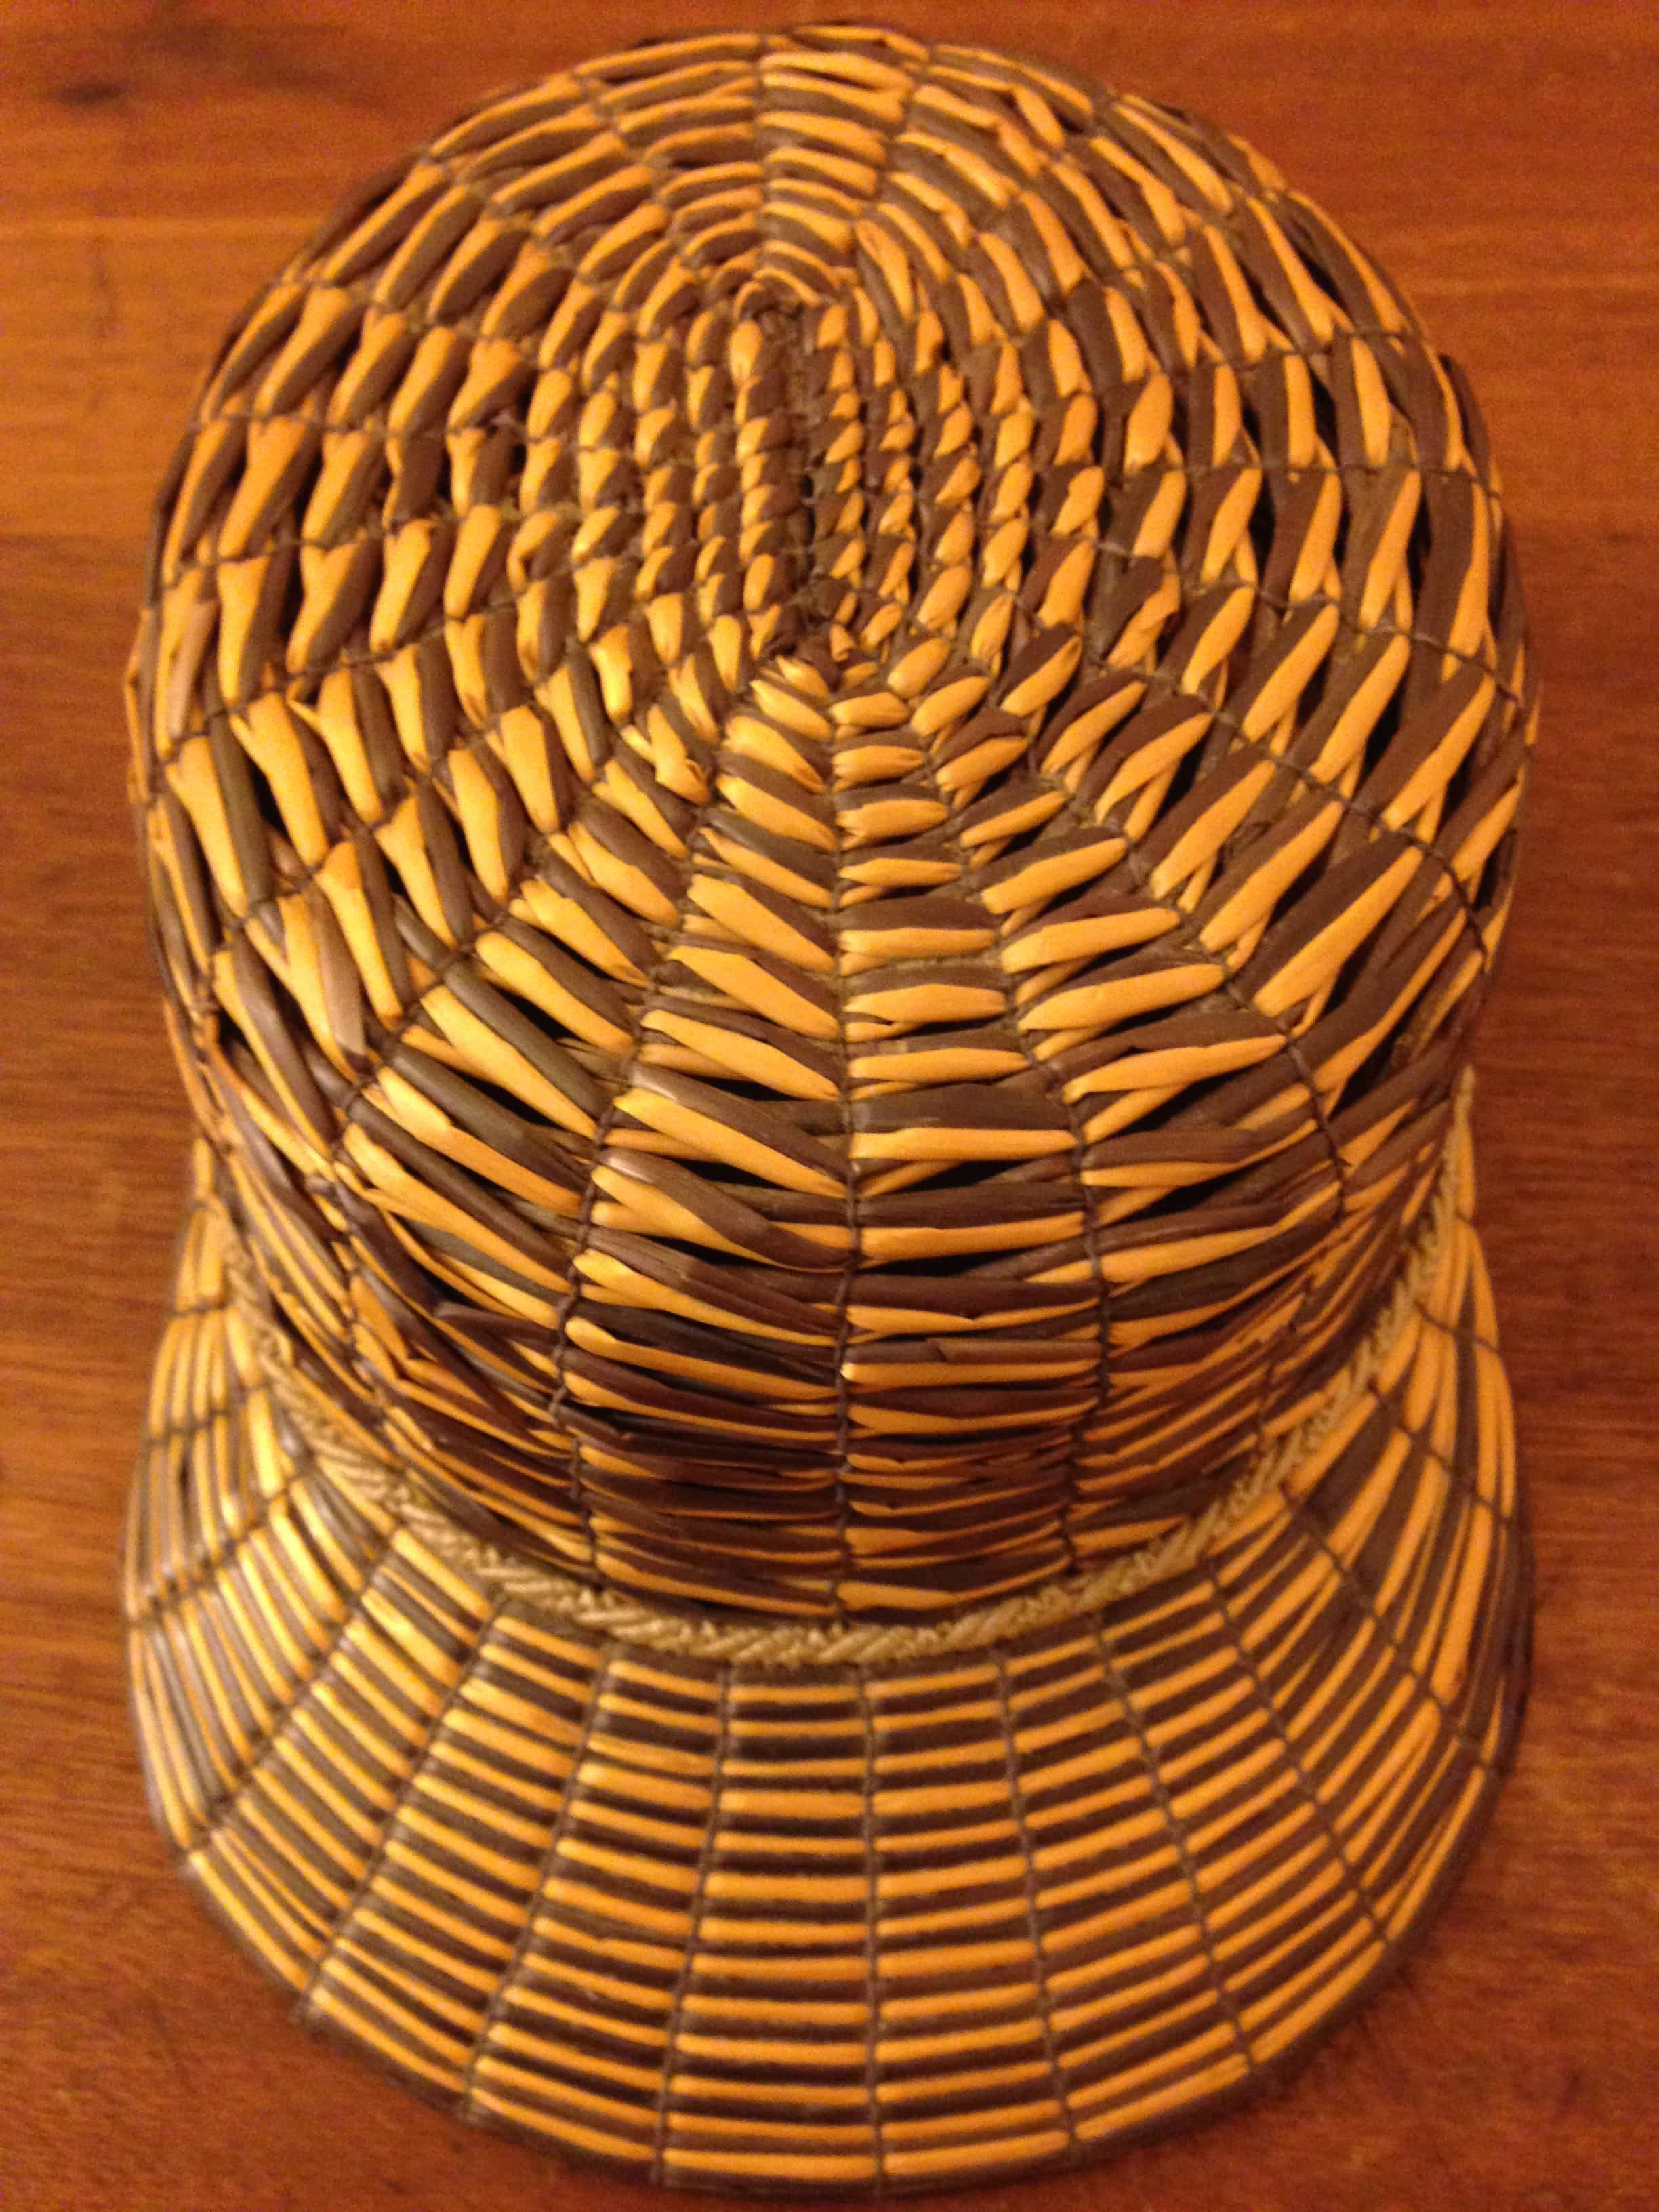 yeddo tied hat Italy, The Straw Shop Collection, Men's straw fashion